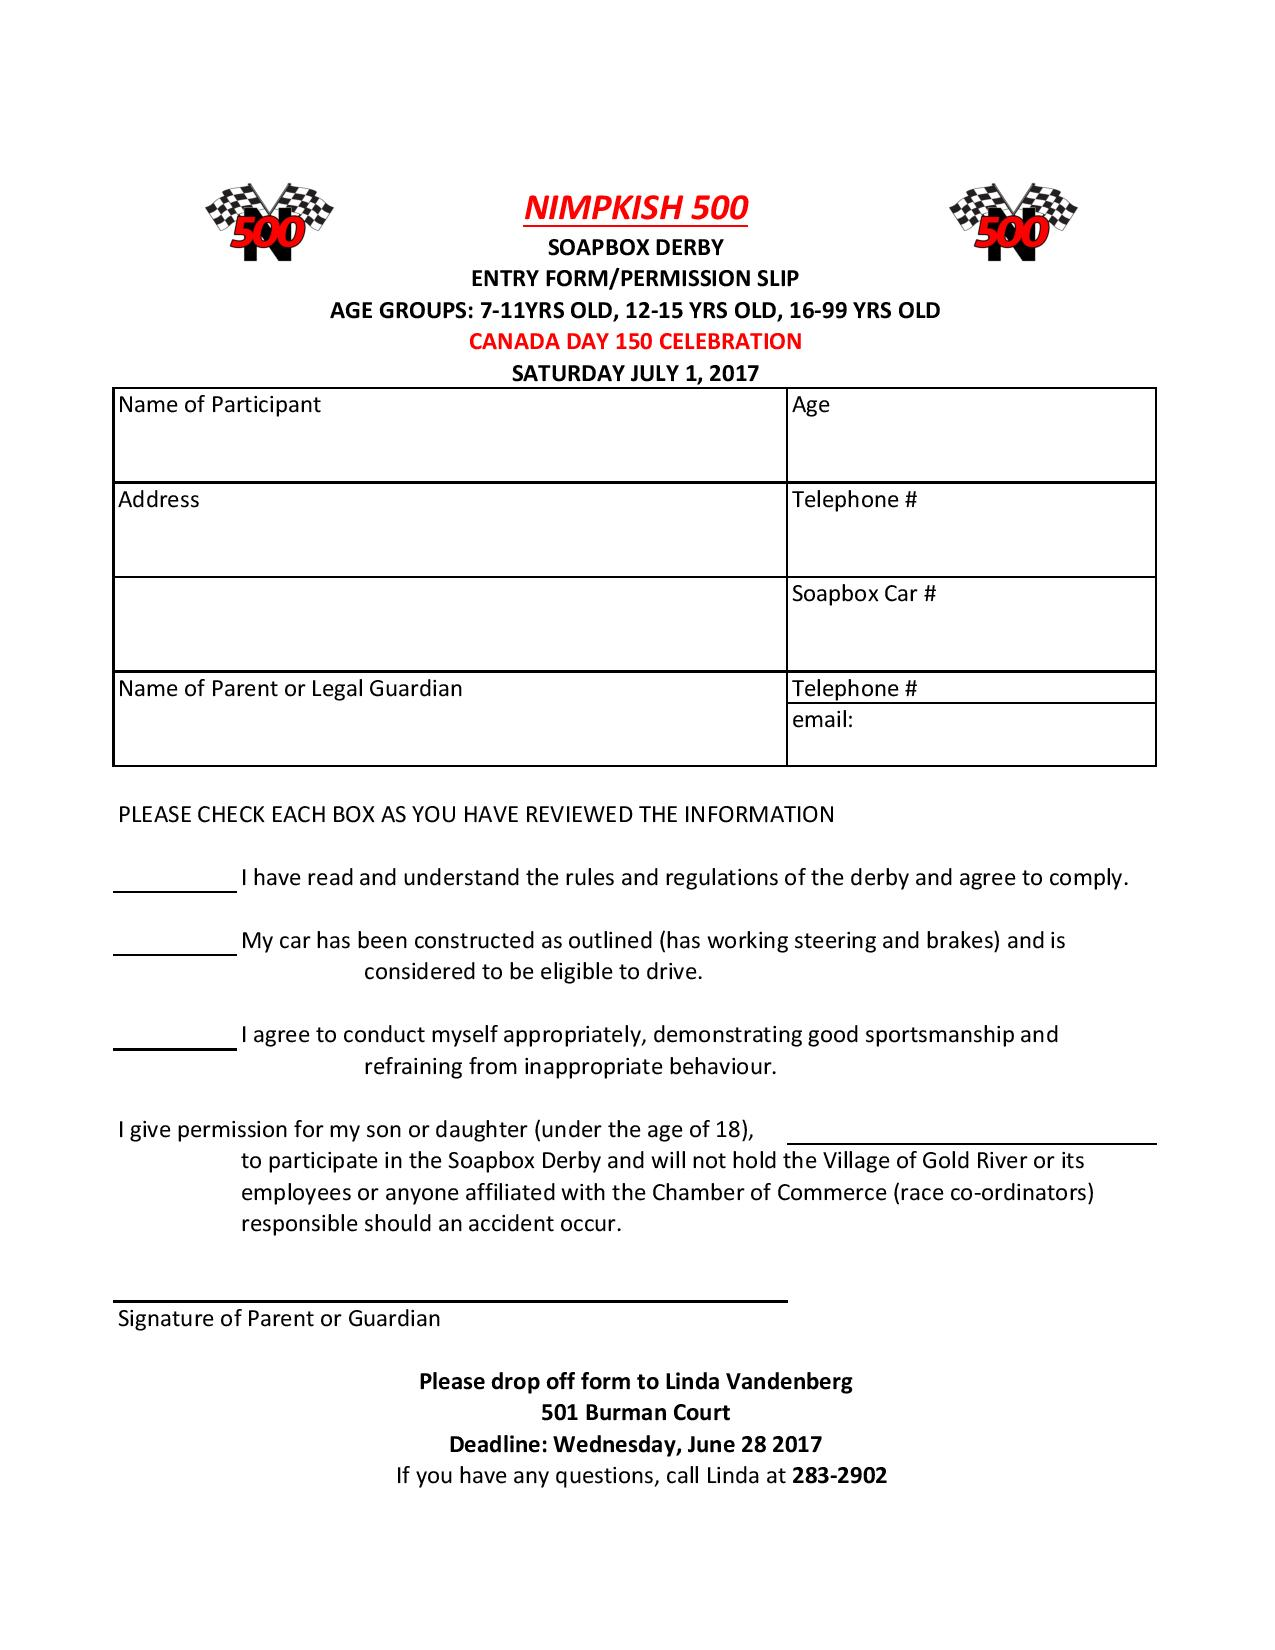 Canadas 150th buzz gold river buzz soapbox derby permission slip solutioingenieria Gallery